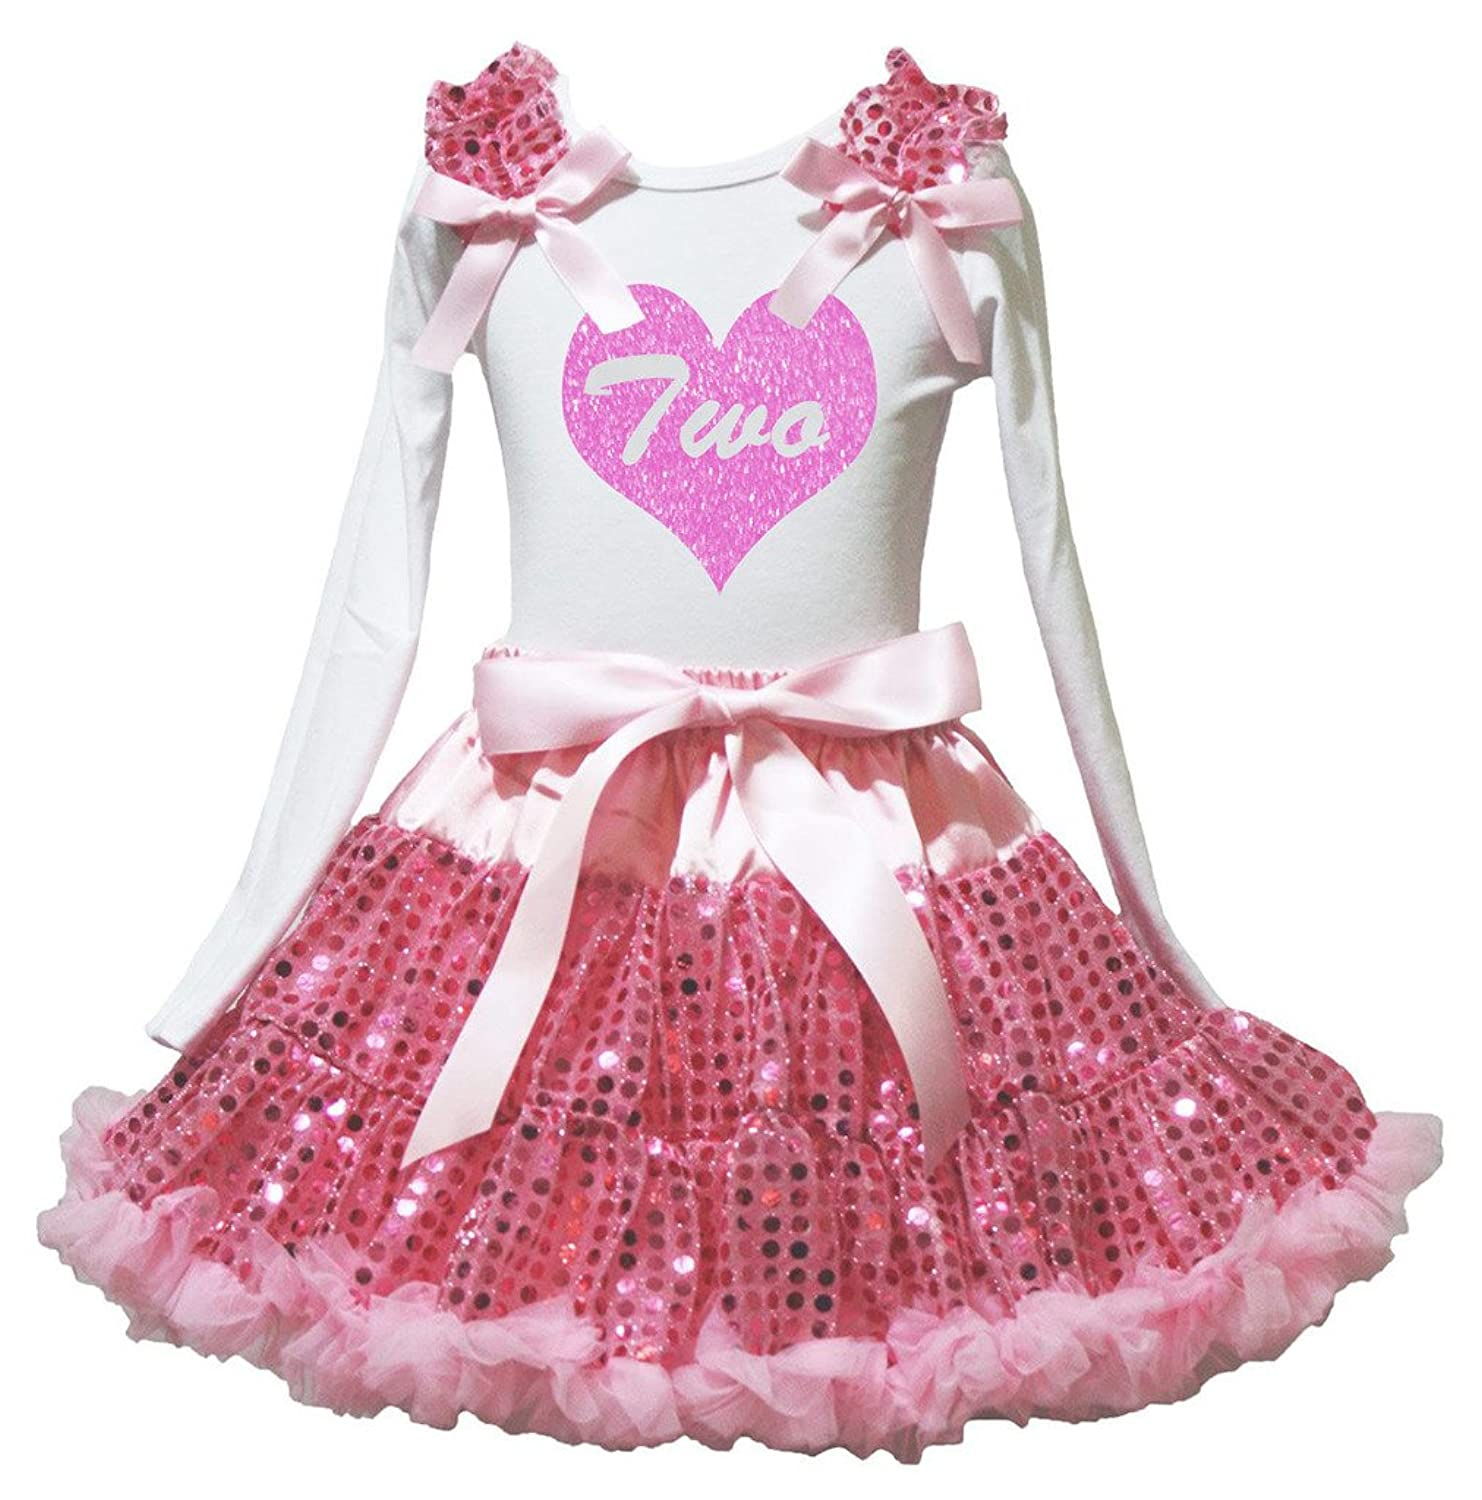 Petitebella Two Heart White L/s Shirt Pink Sequins Skirt Set 1-8y